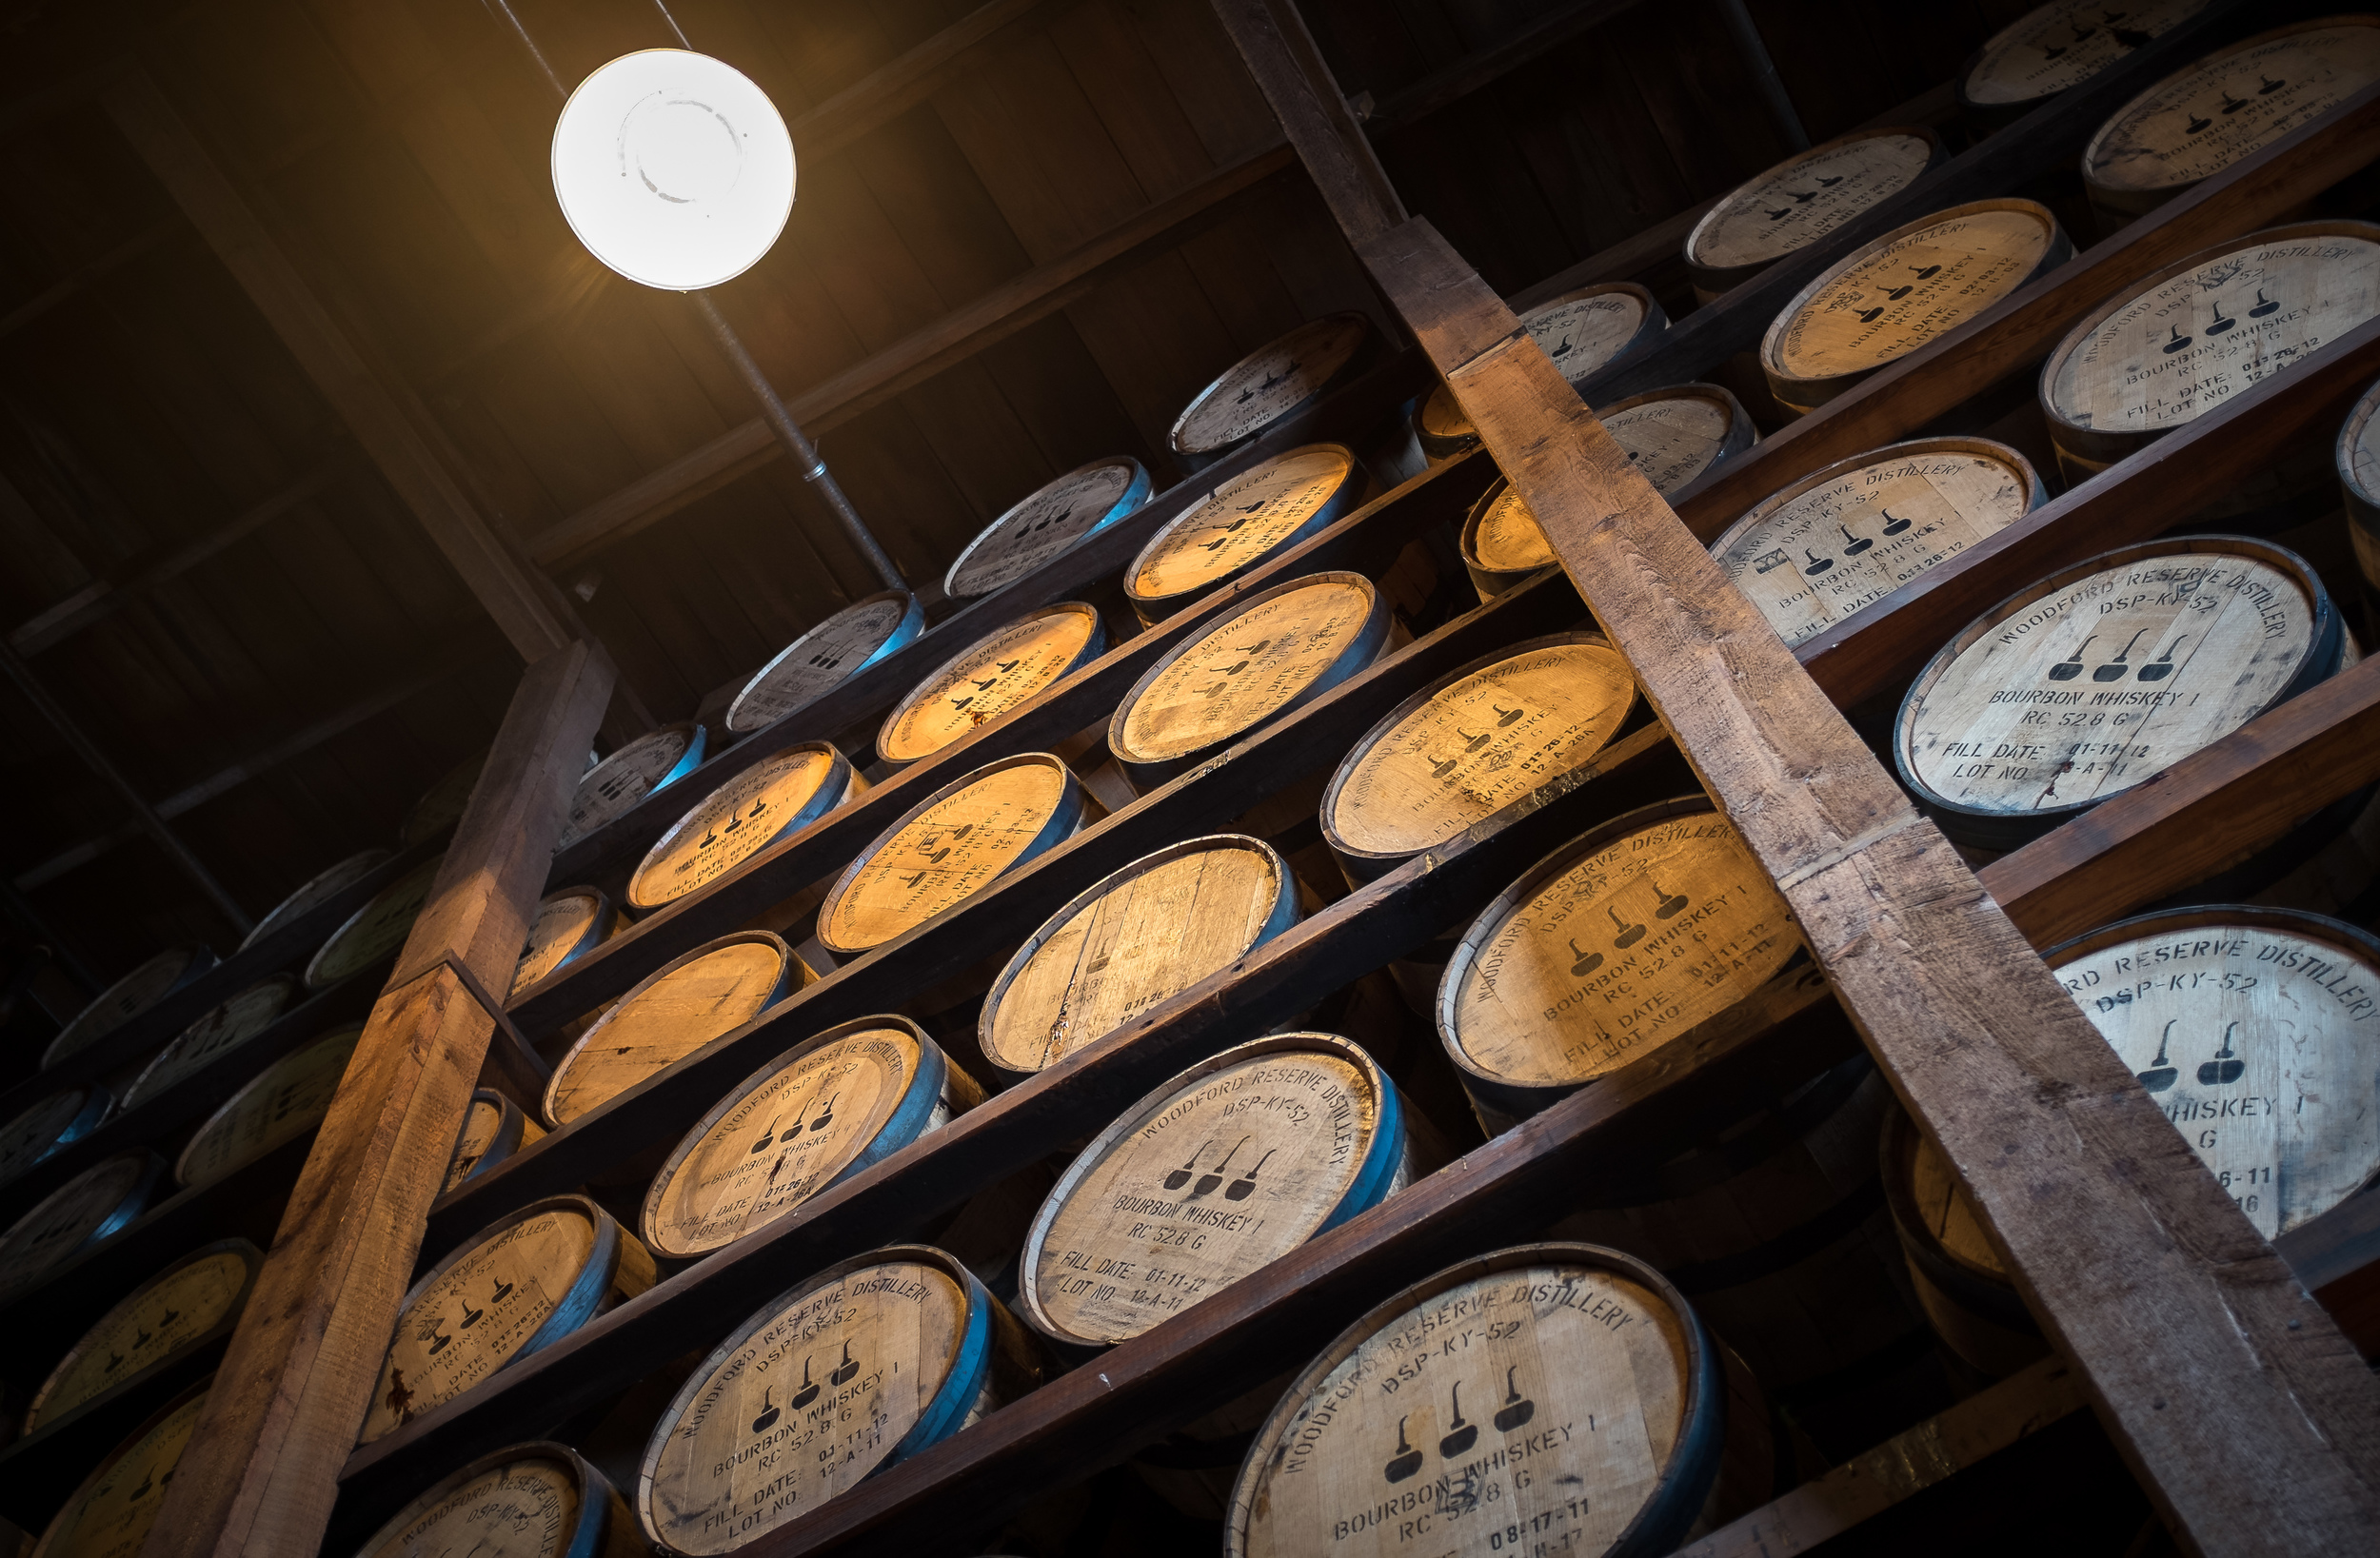 Bourbon barrels aging at Woodford Reserve. 1/15 @ f2.0, ISO 400.